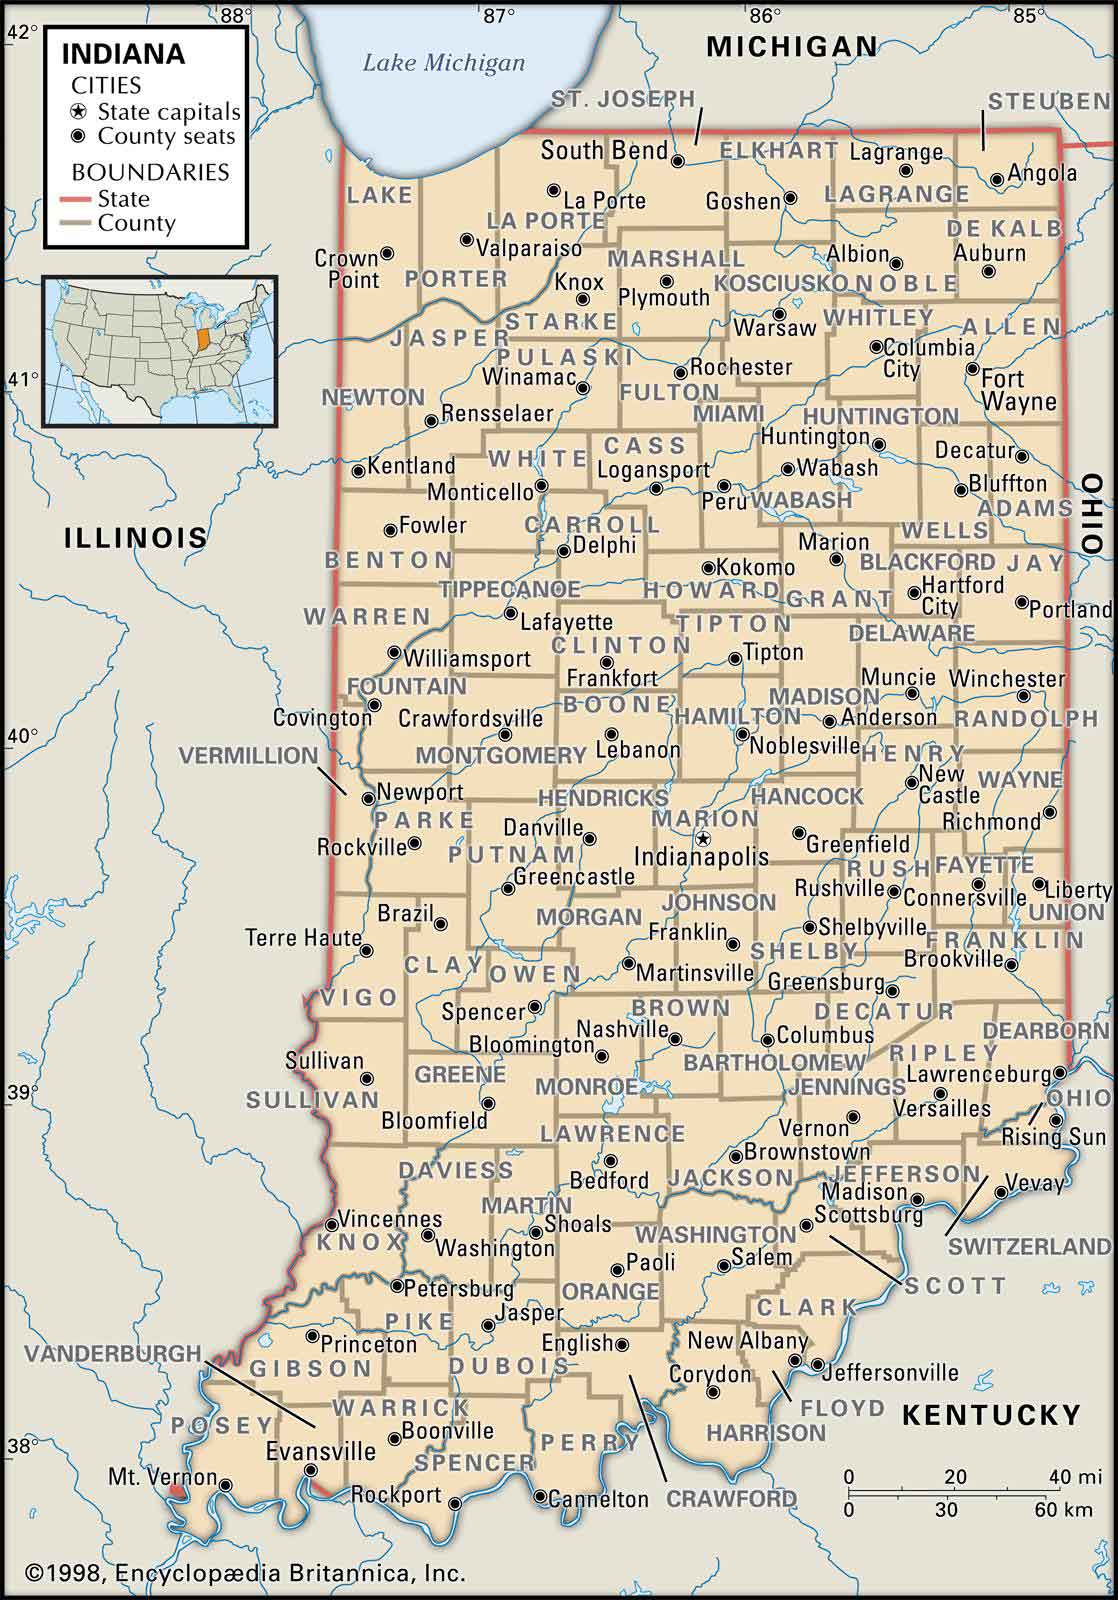 Historical Facts of Indiana Counties Guide